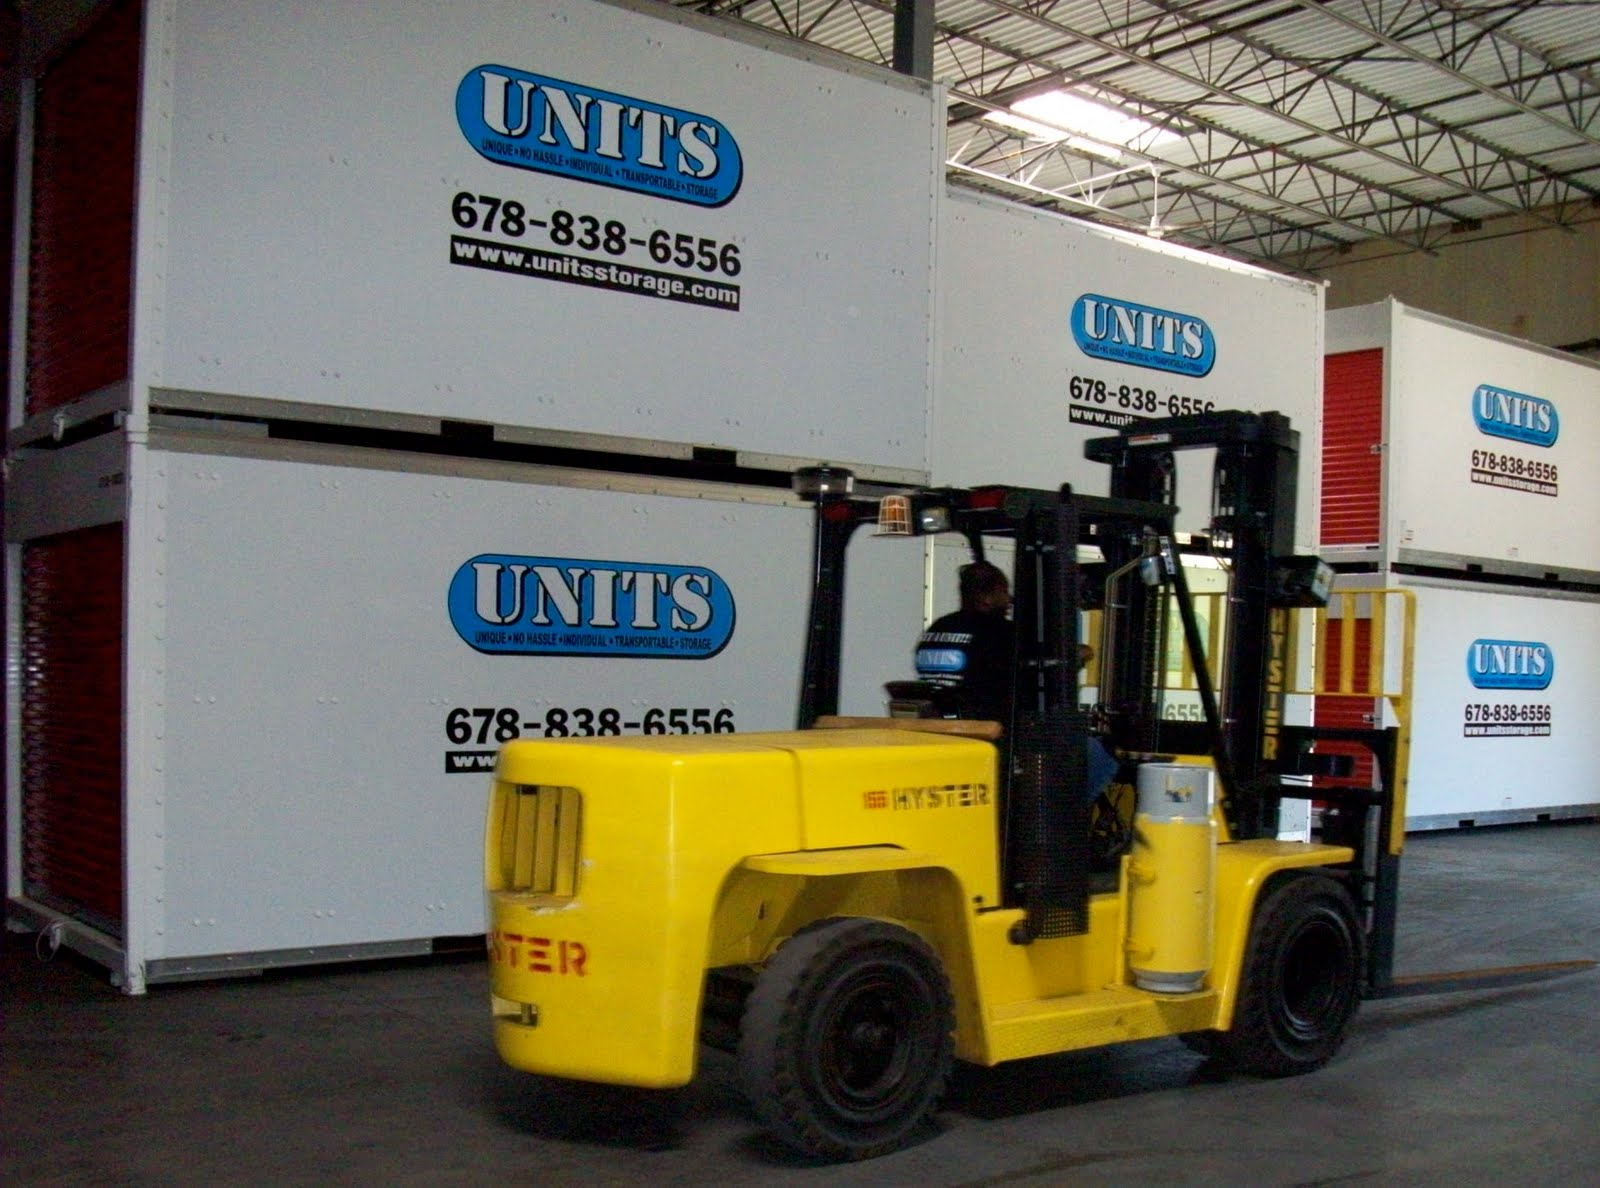 UNITS Moving and Portable Storage Atlanta: Your Moving and ...